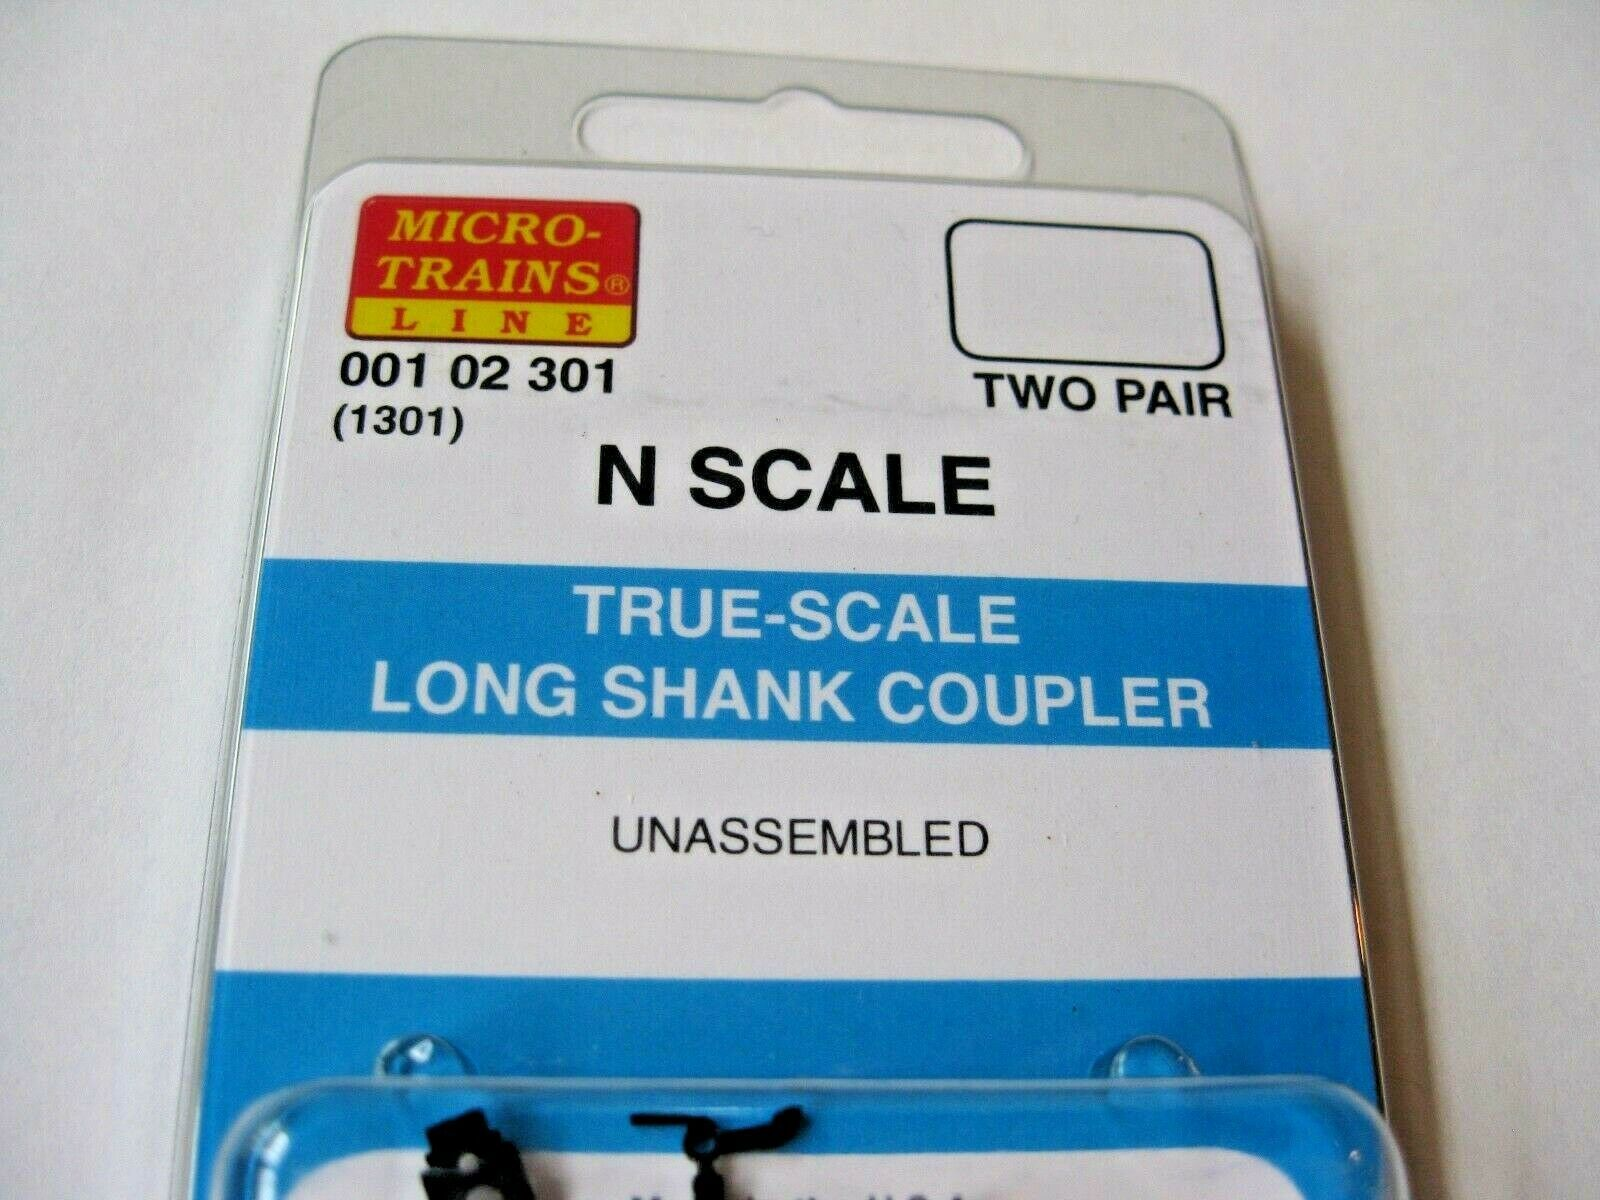 Micro-Trains Stock #00102301 True-Scale Long Shank Coupler (1301) N-Scale